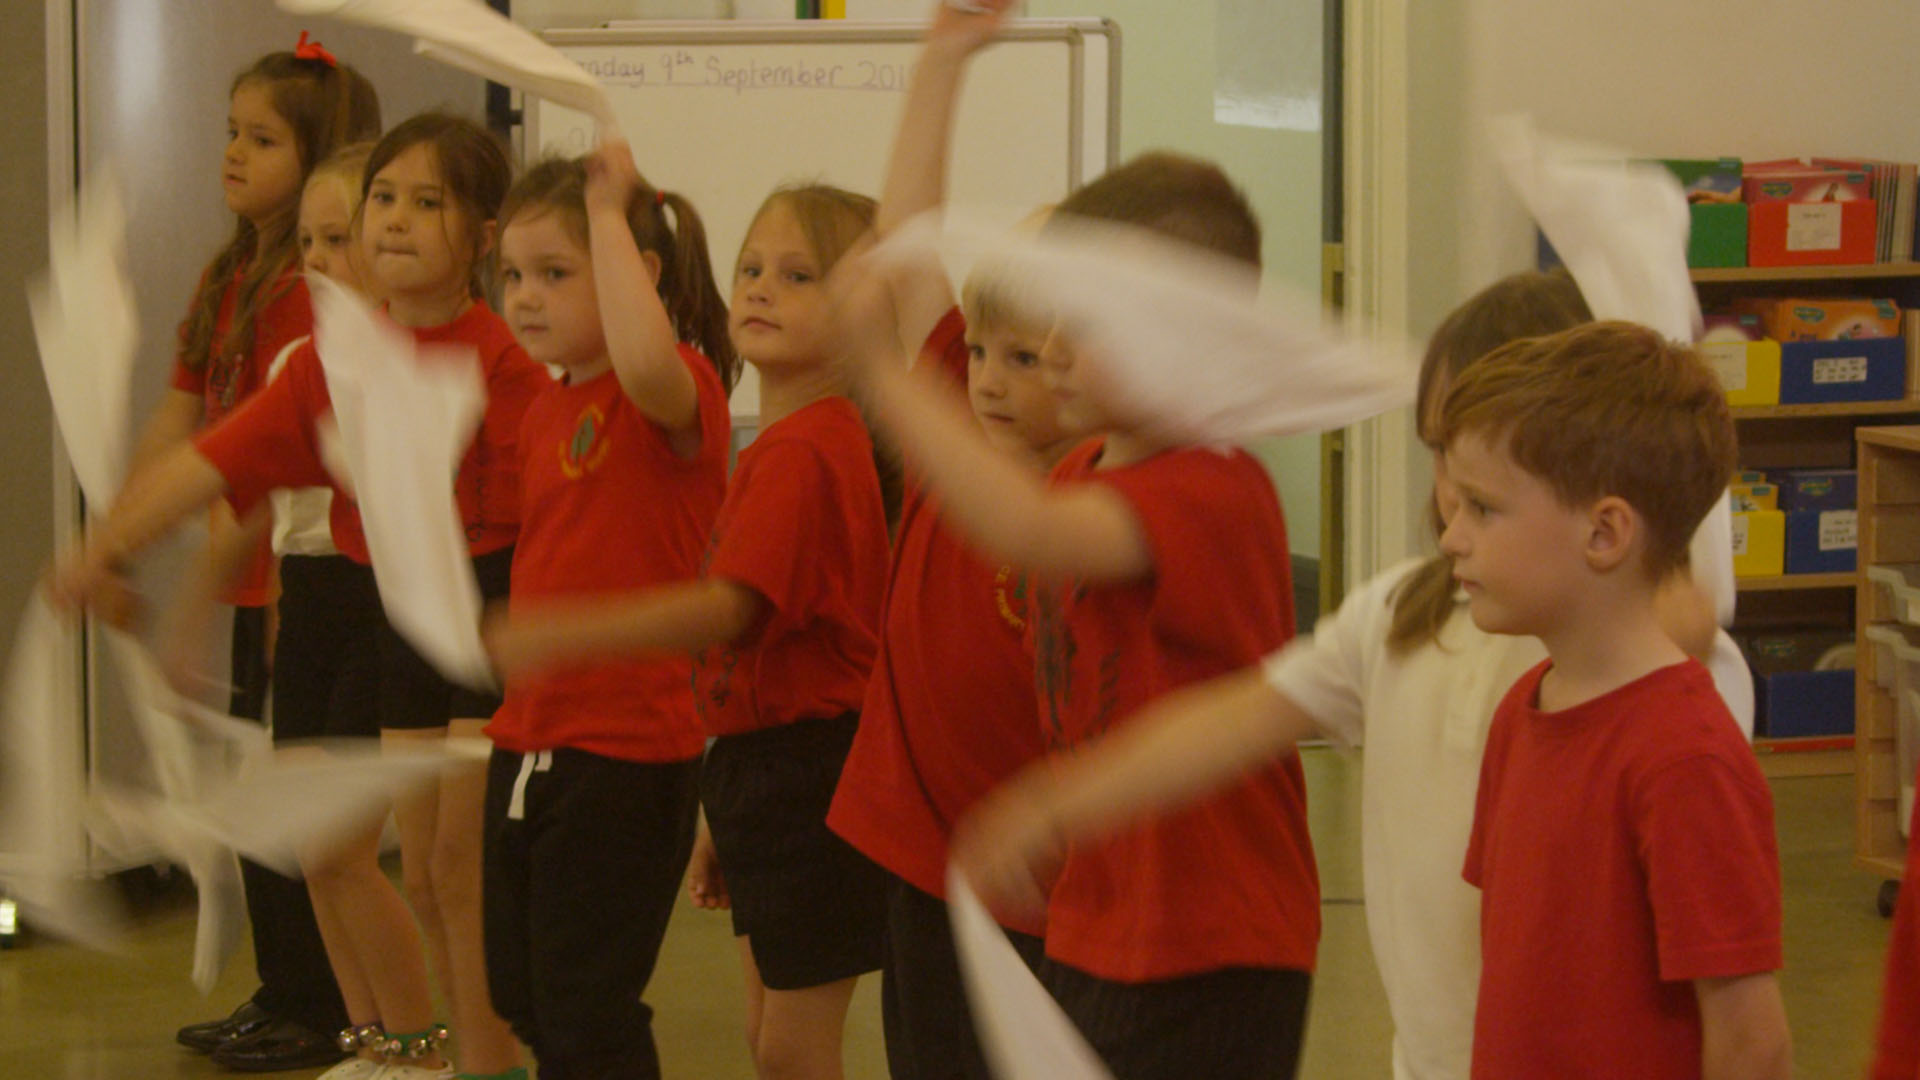 School children performing morris dancing